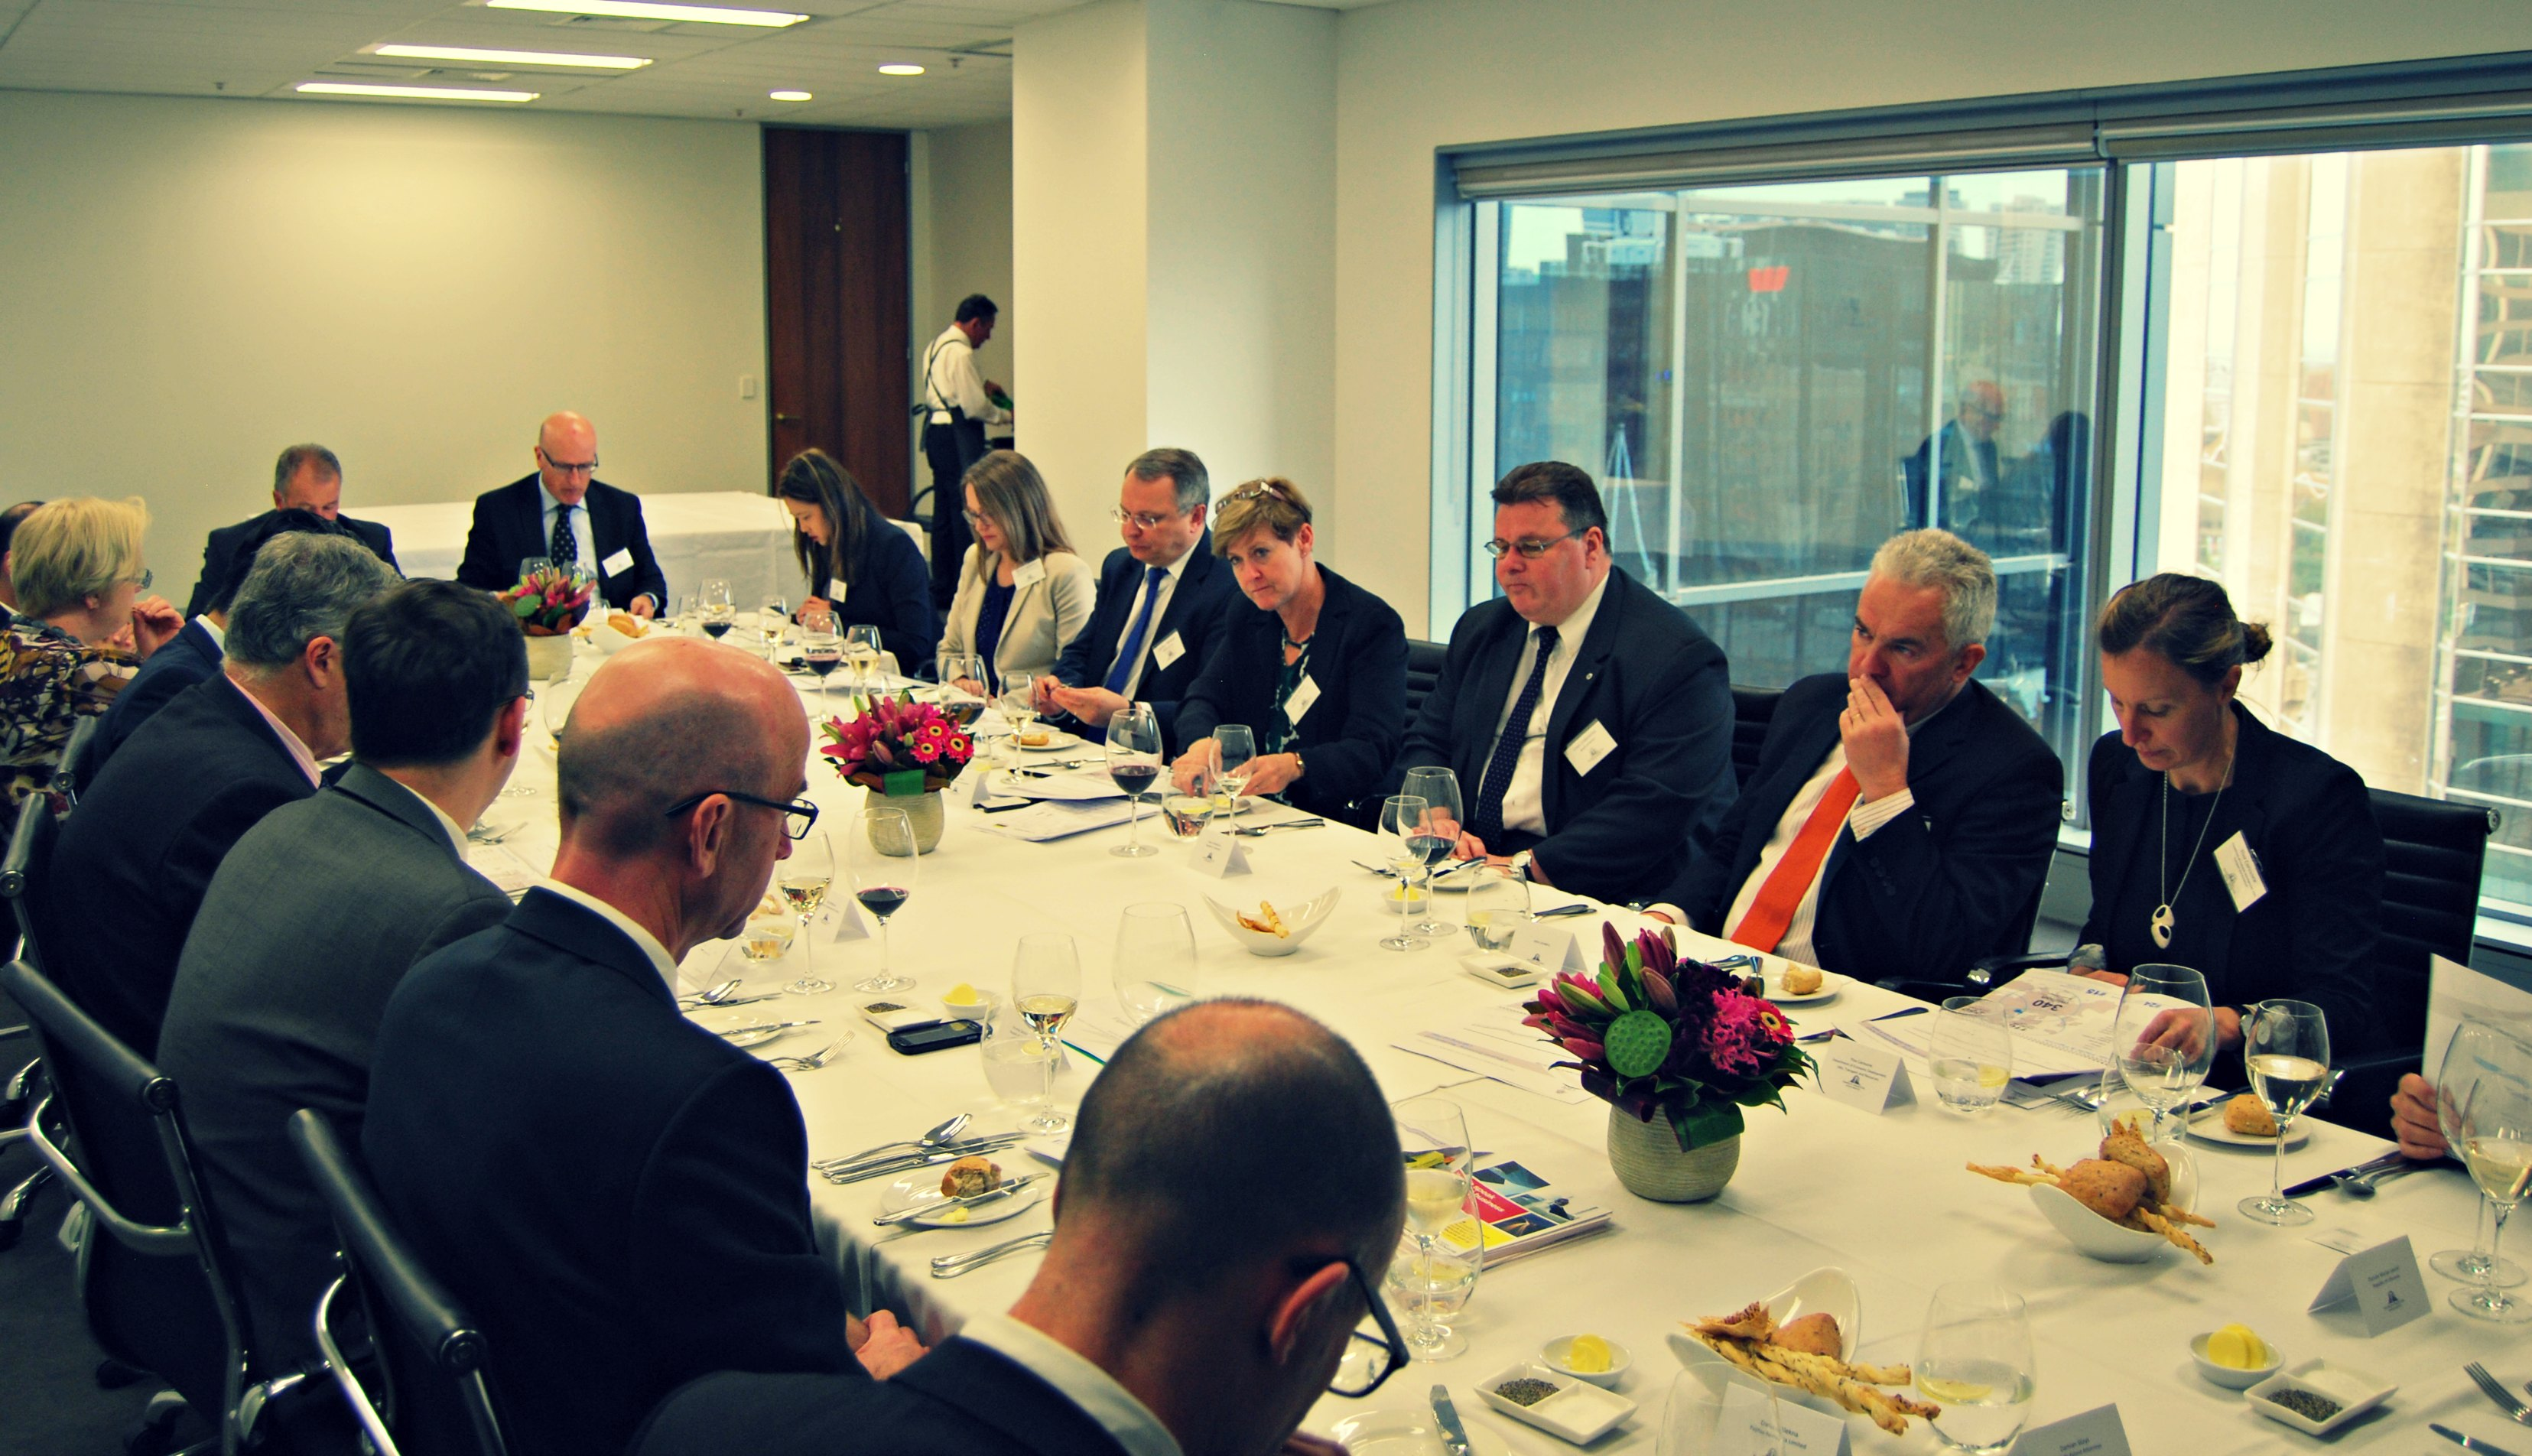 Lithuanian delegation and ALBC representatives at the networking lunch